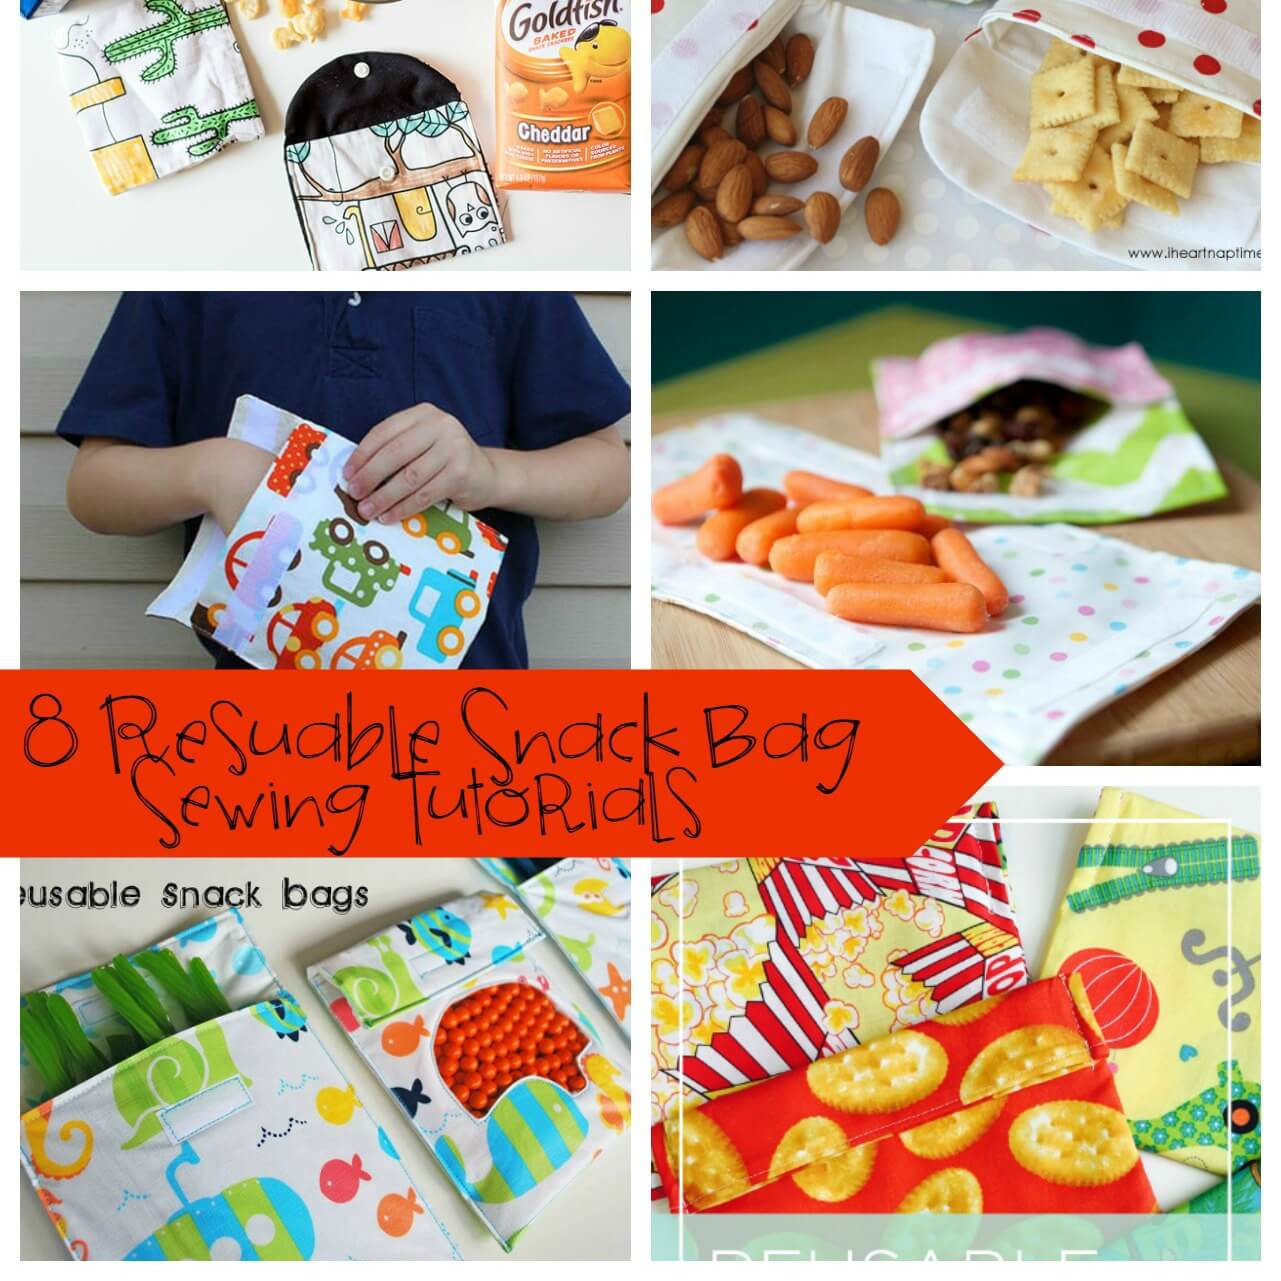 8 Reusable Snack Bag Tutorials for on the go snacking